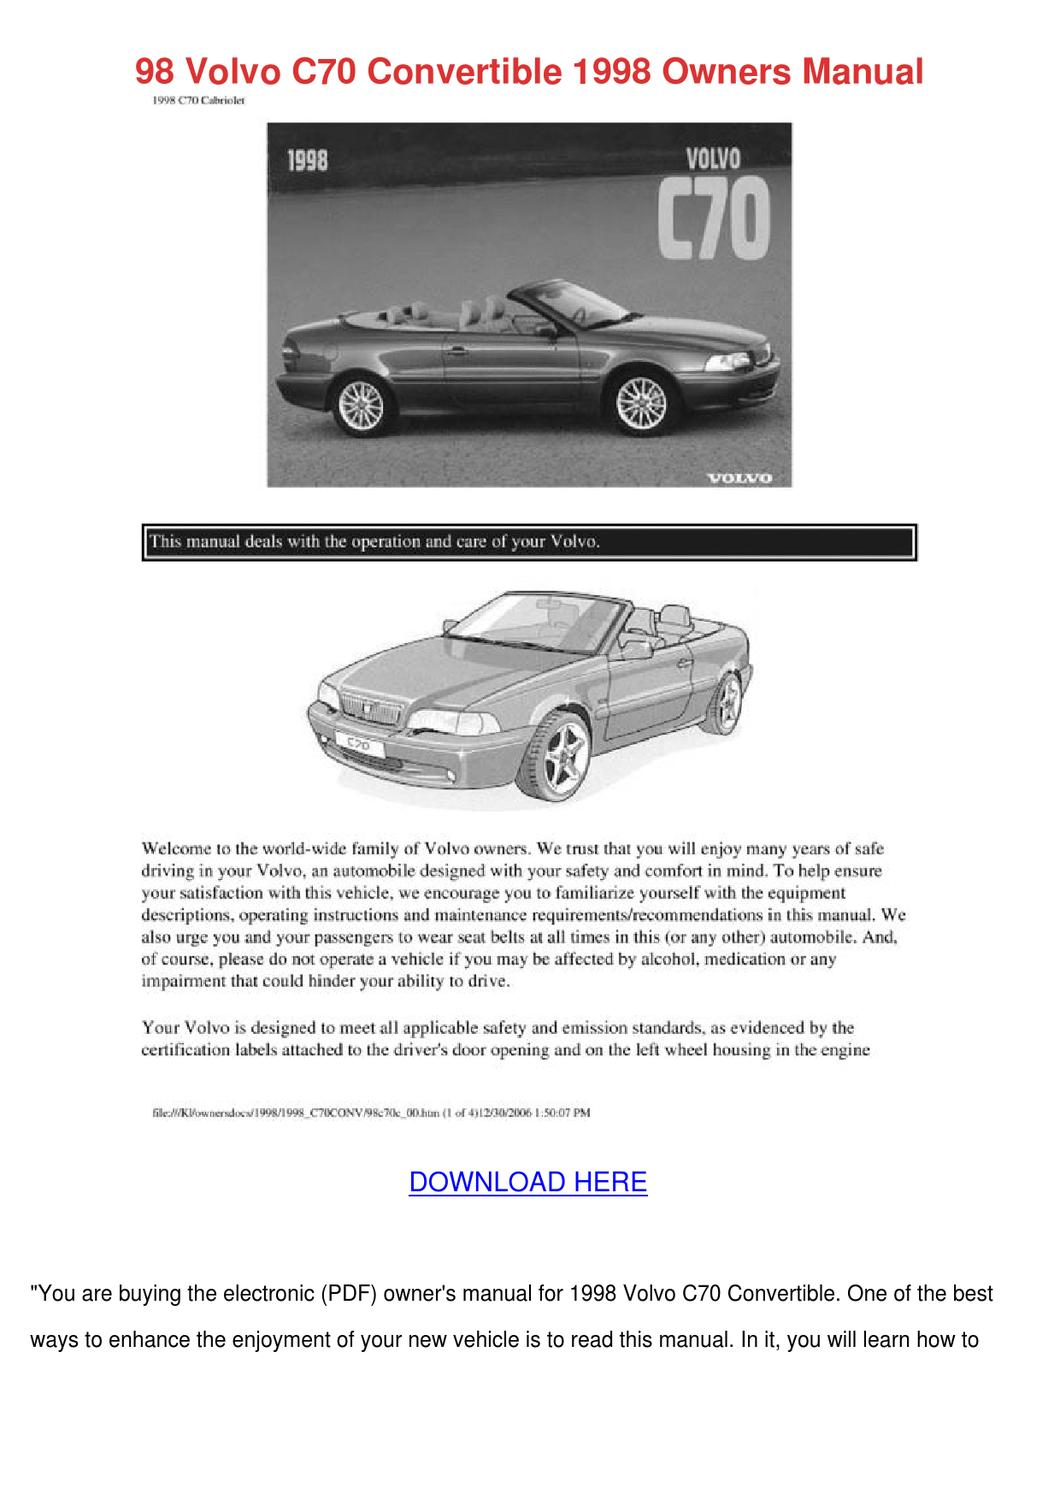 2005 volvo s60 repair manual download